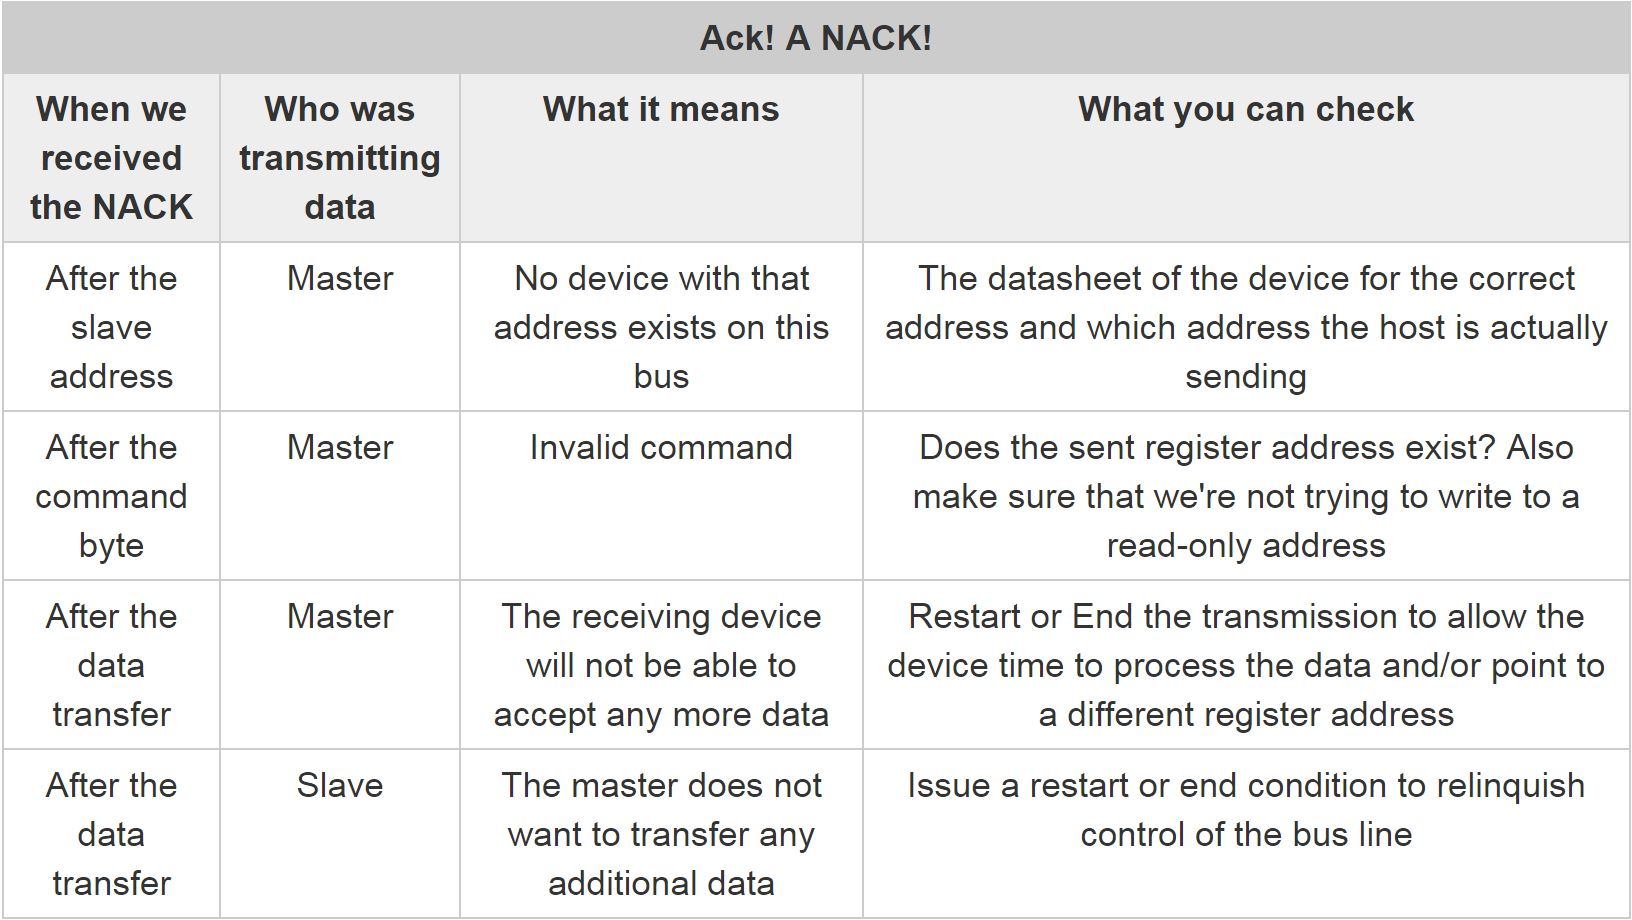 What you can do when you receive a NACK